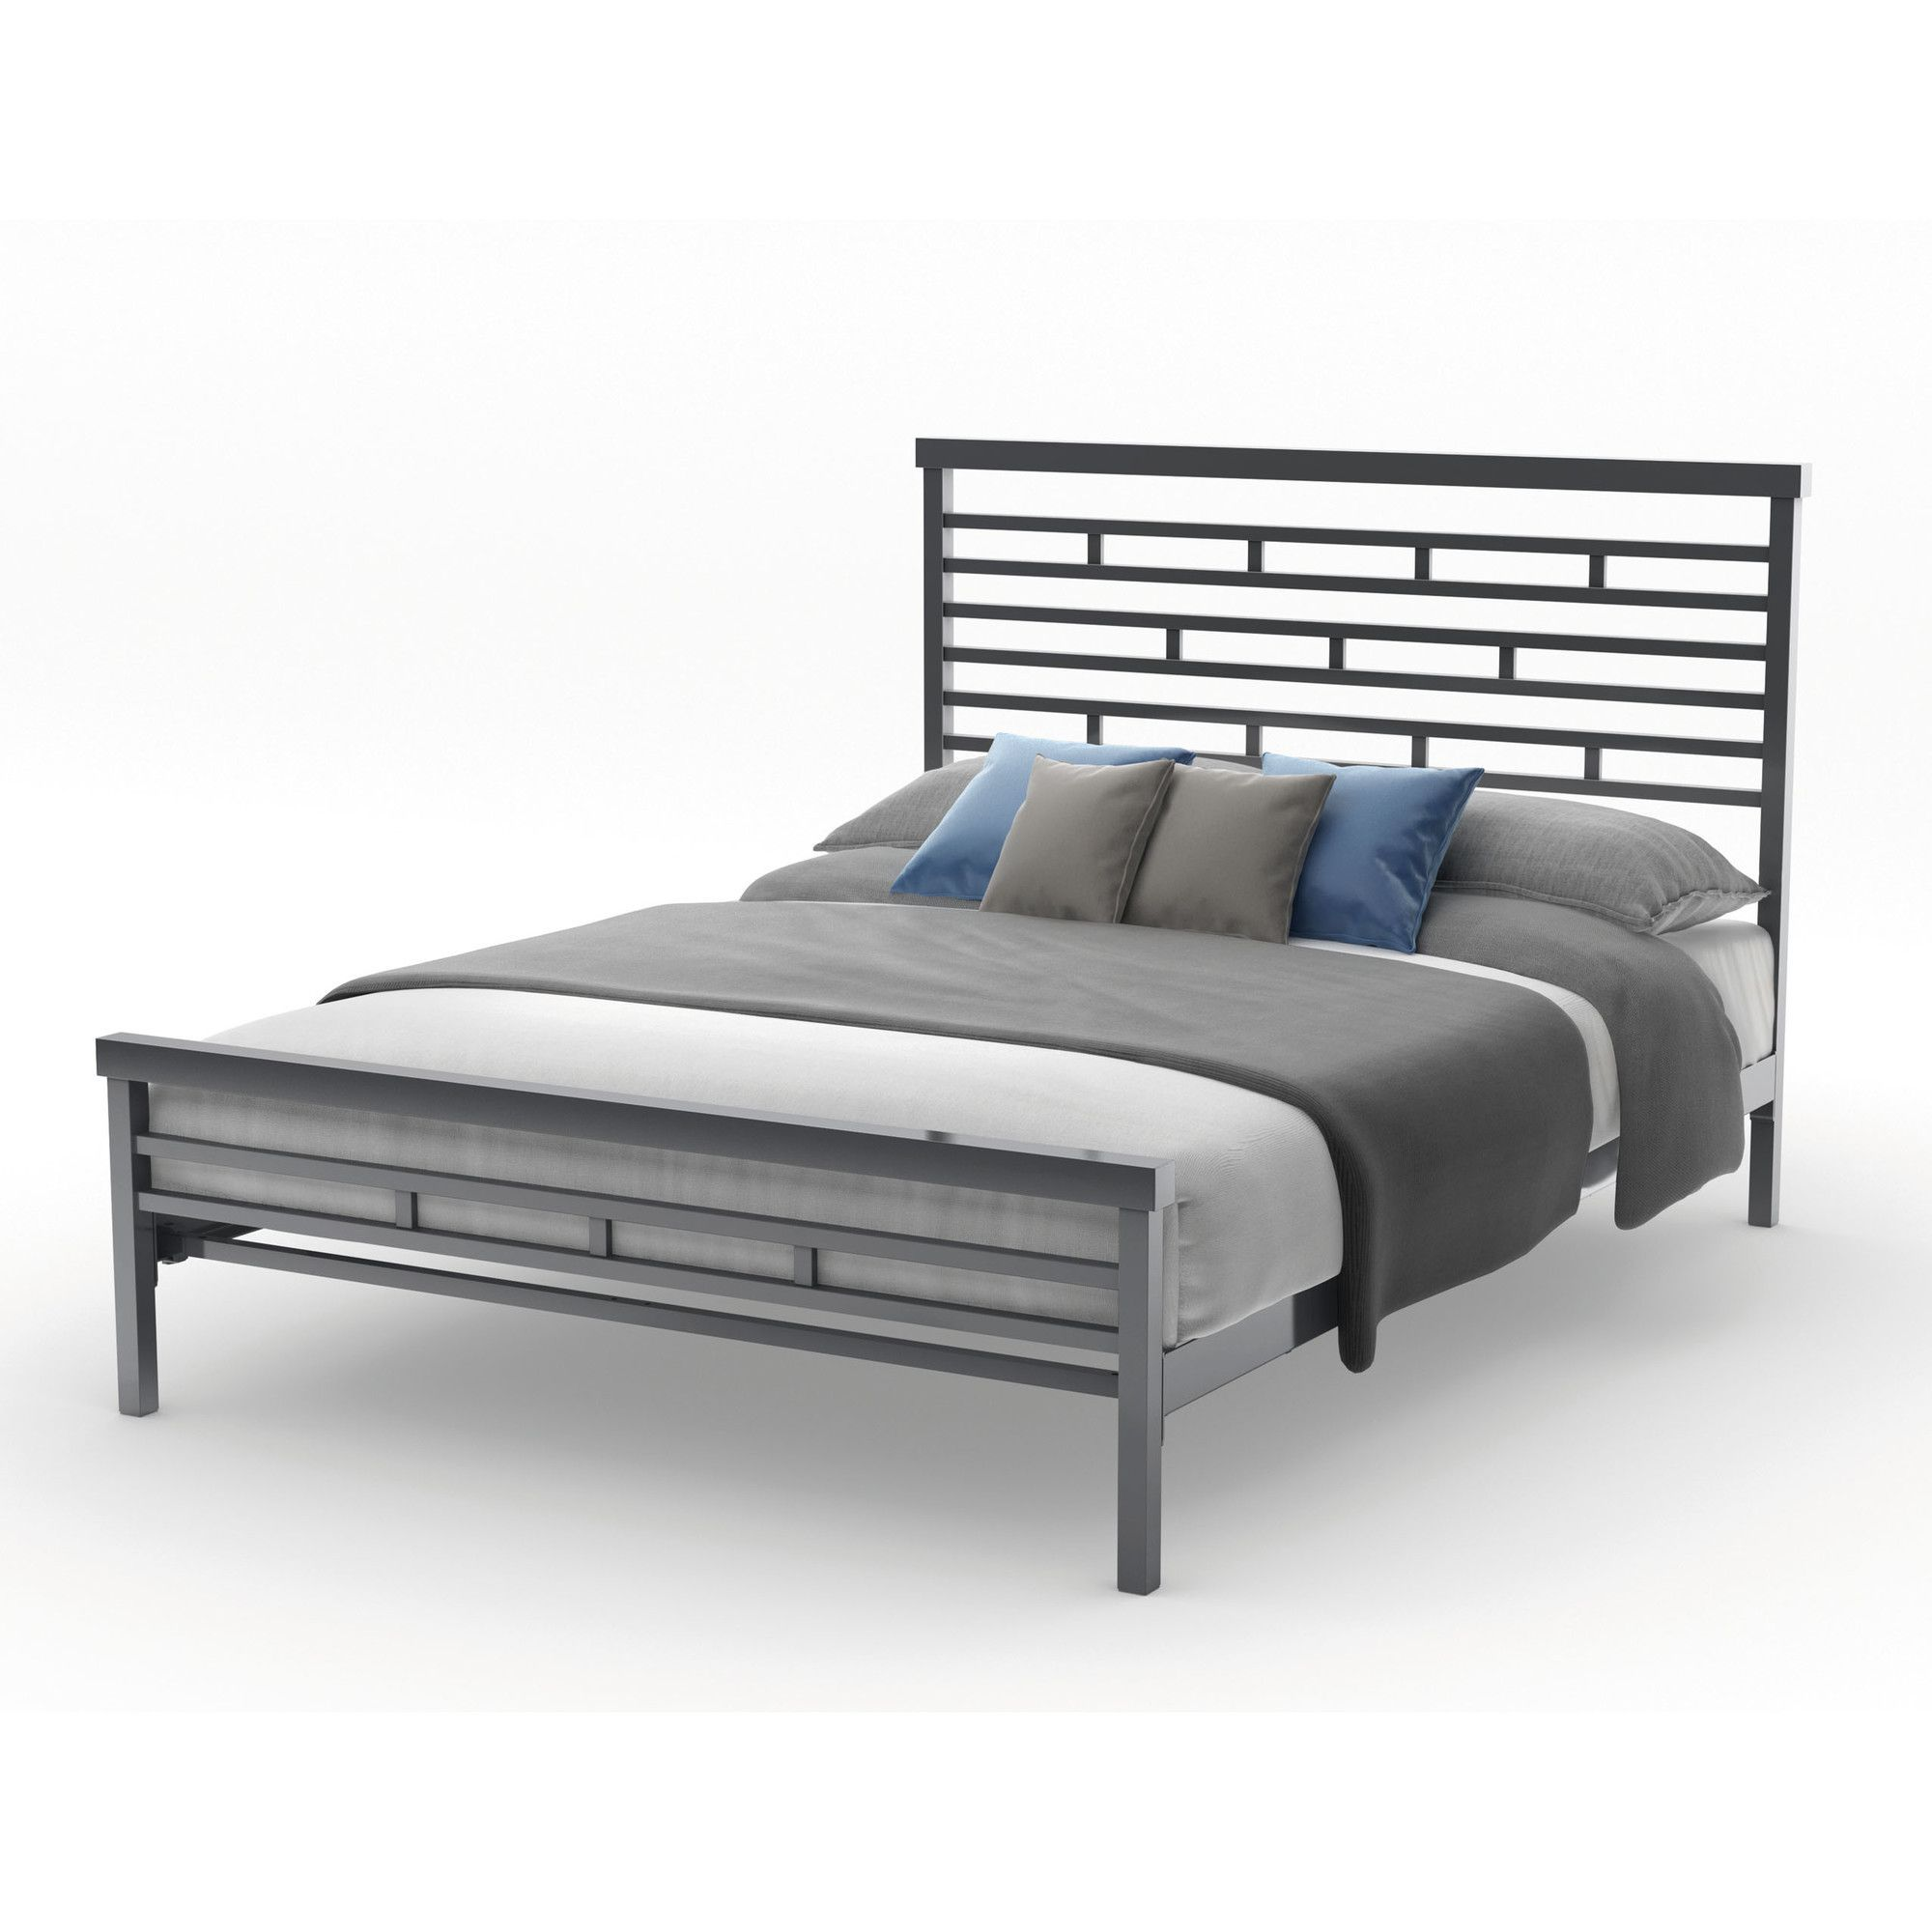 HighWay Steel Headboard and Footboard Full size bed